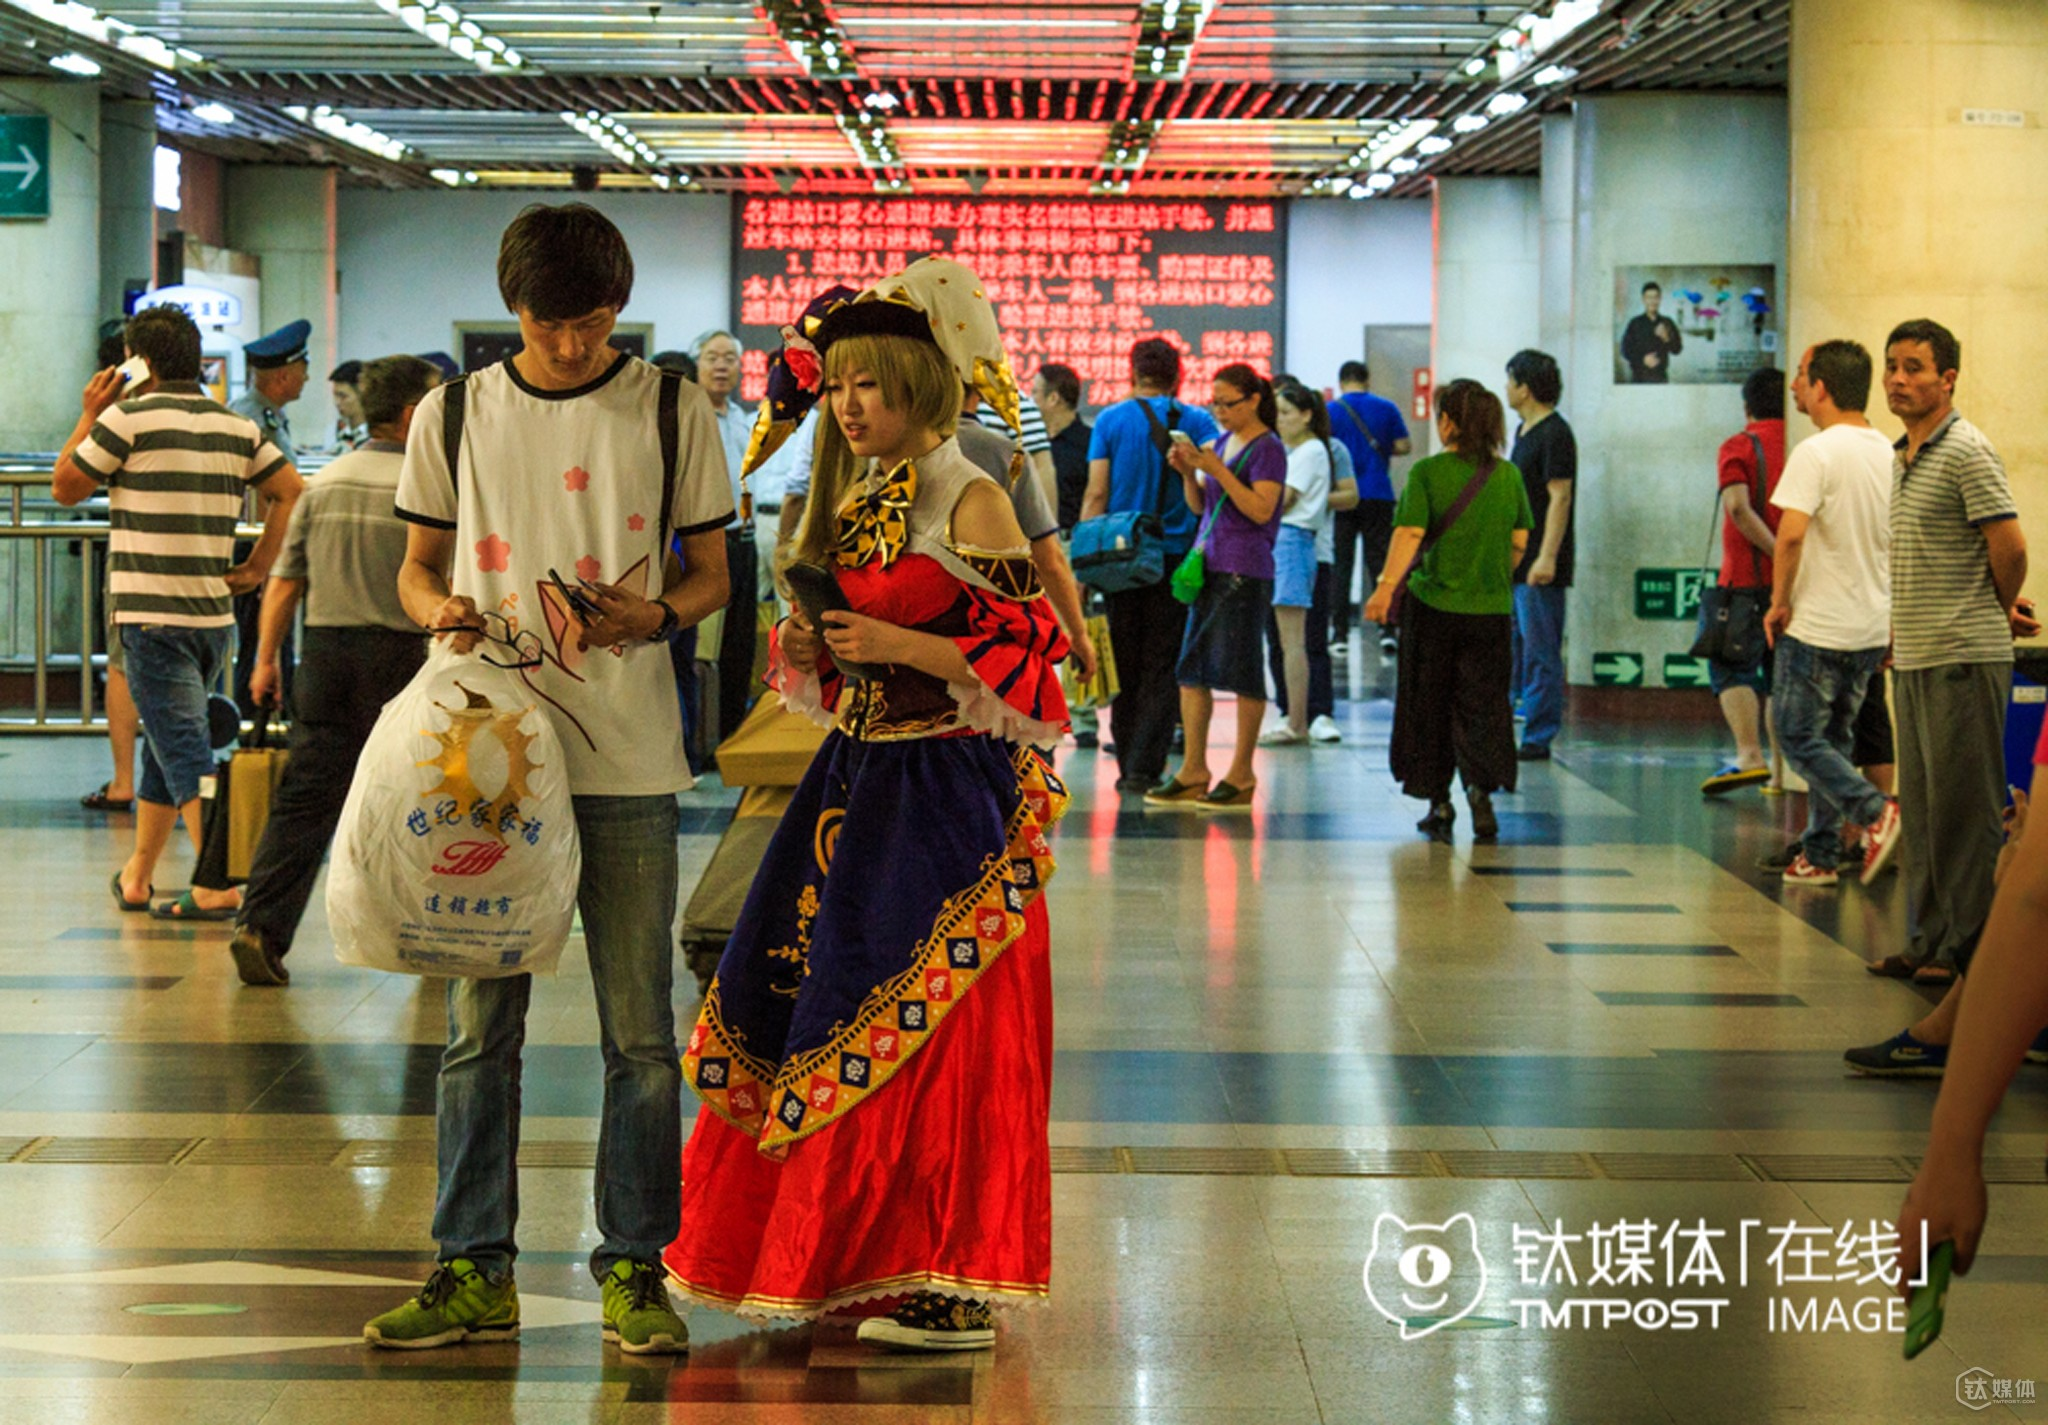 A coser who hadn't had time to remove her makeup was heading for the subway with her boyfriend. However, they didn't think they were quite different in the crowd.